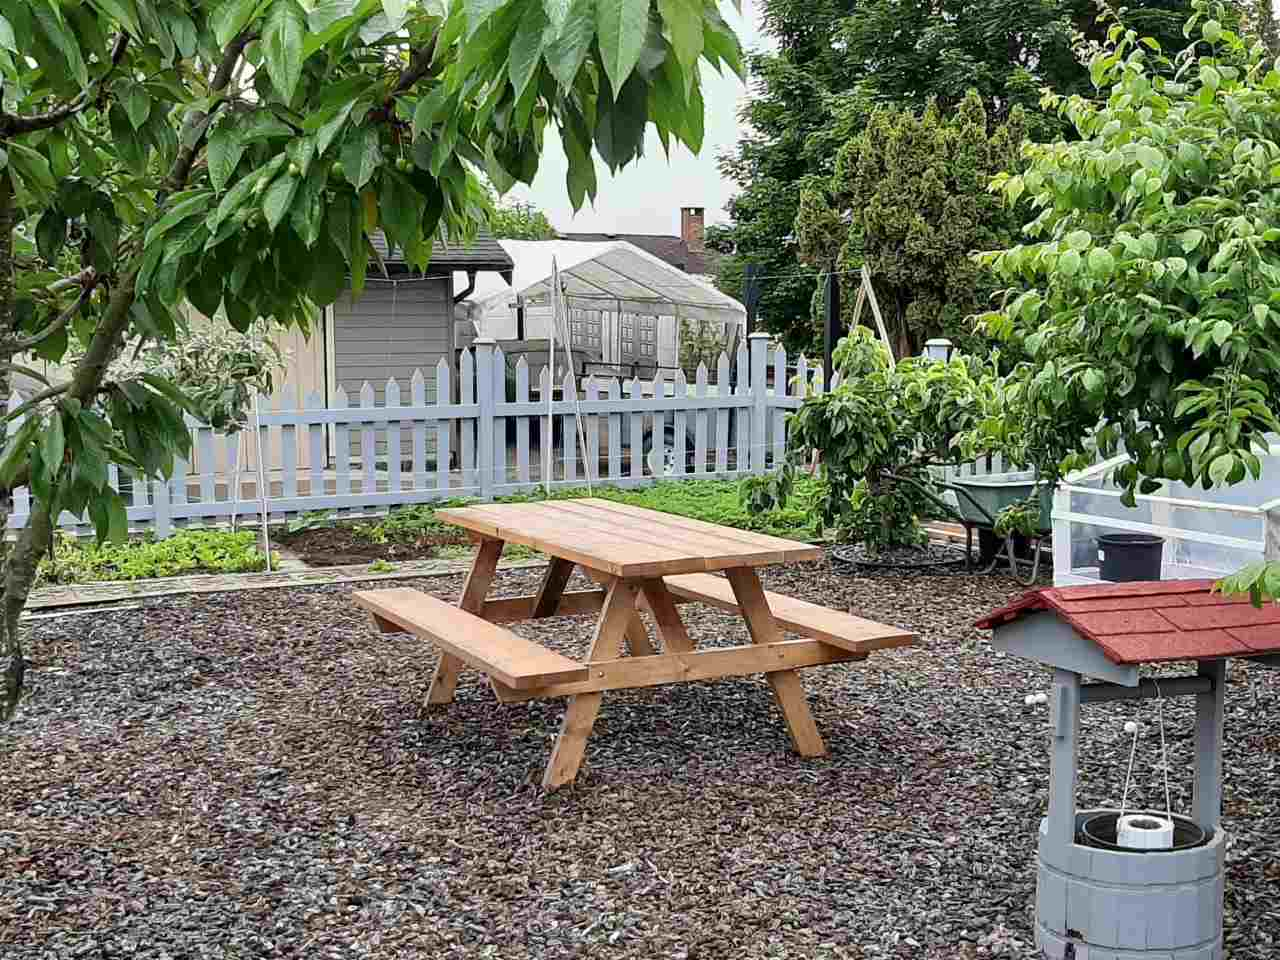 615 E 6TH STREET - Queensbury House/Single Family for sale, 5 Bedrooms (R2561624) - #22